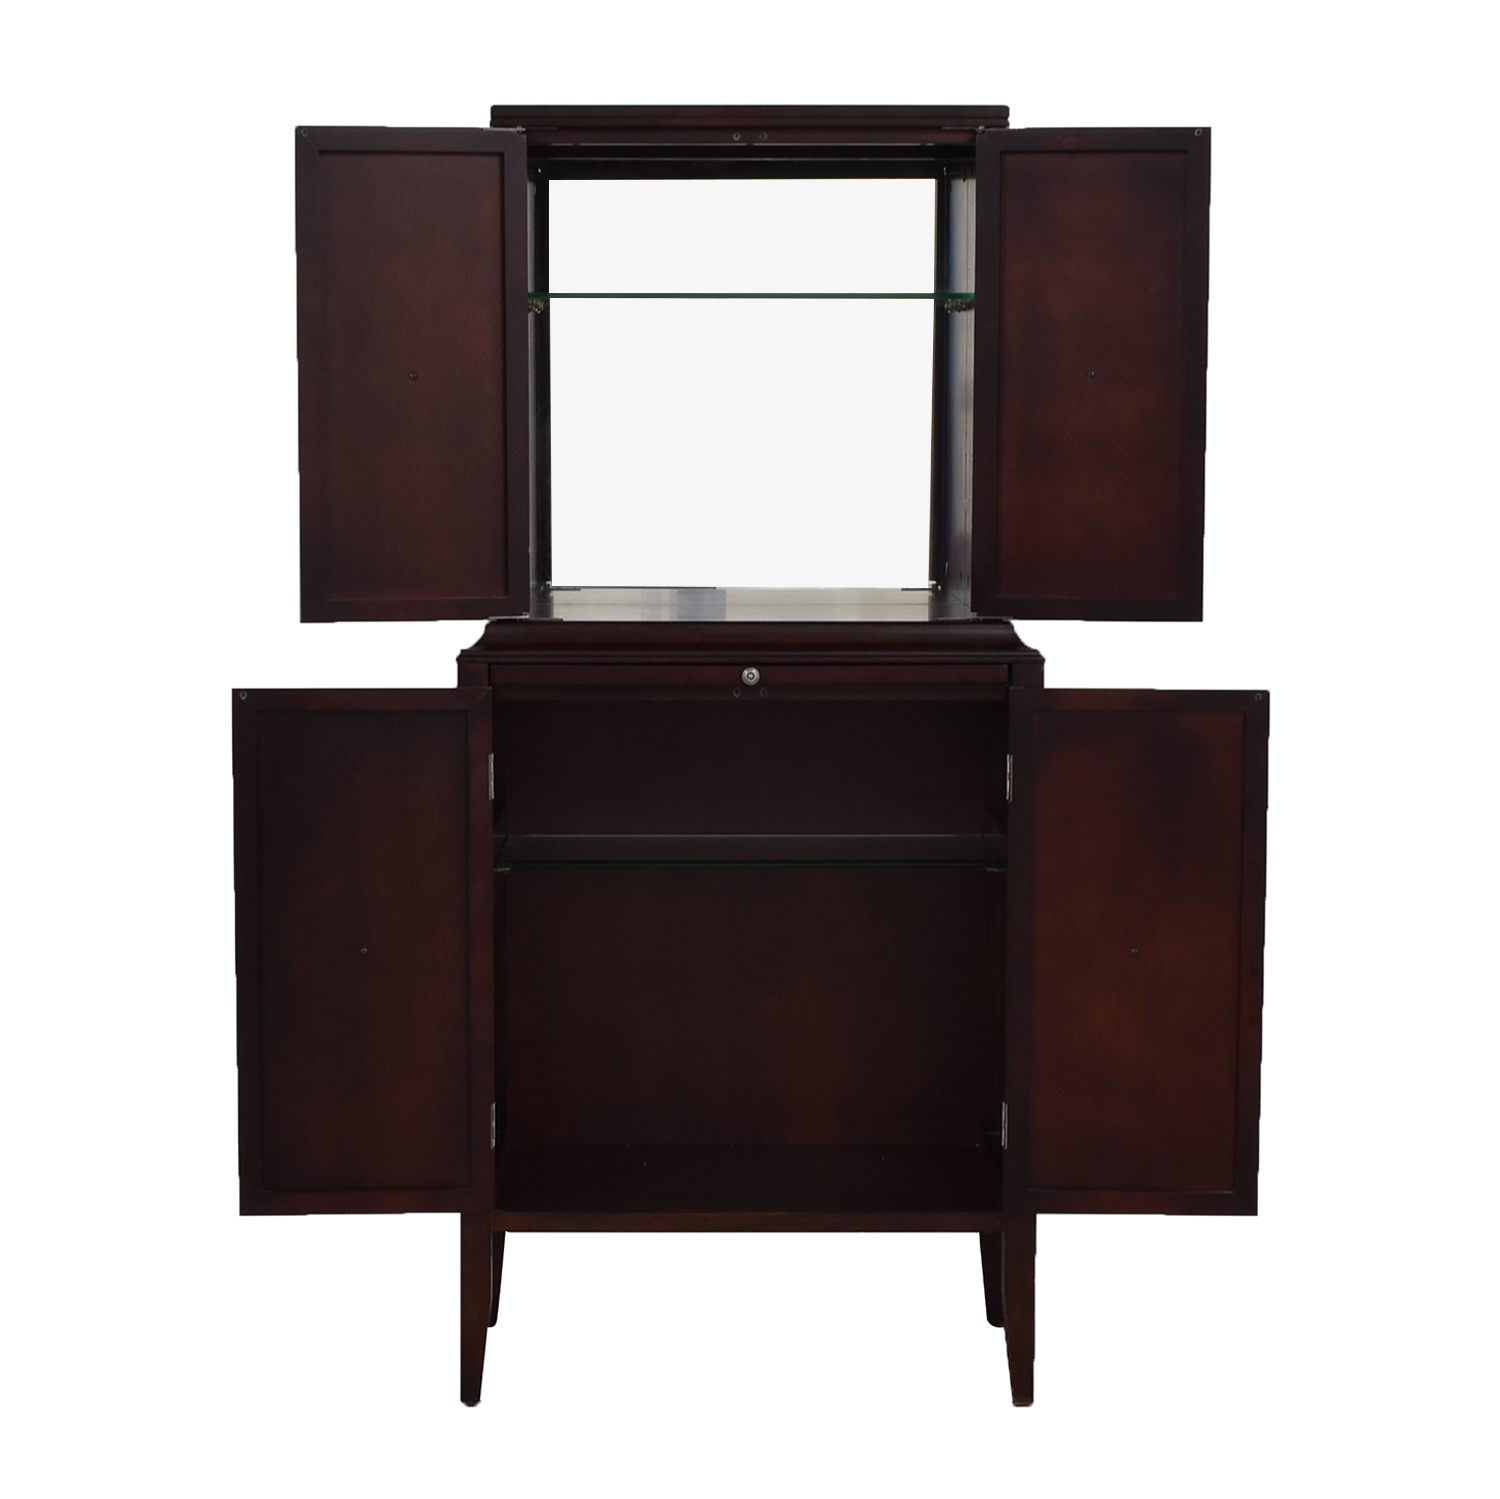 Bombay Company Wood Wine Bar Cabinet / Storage